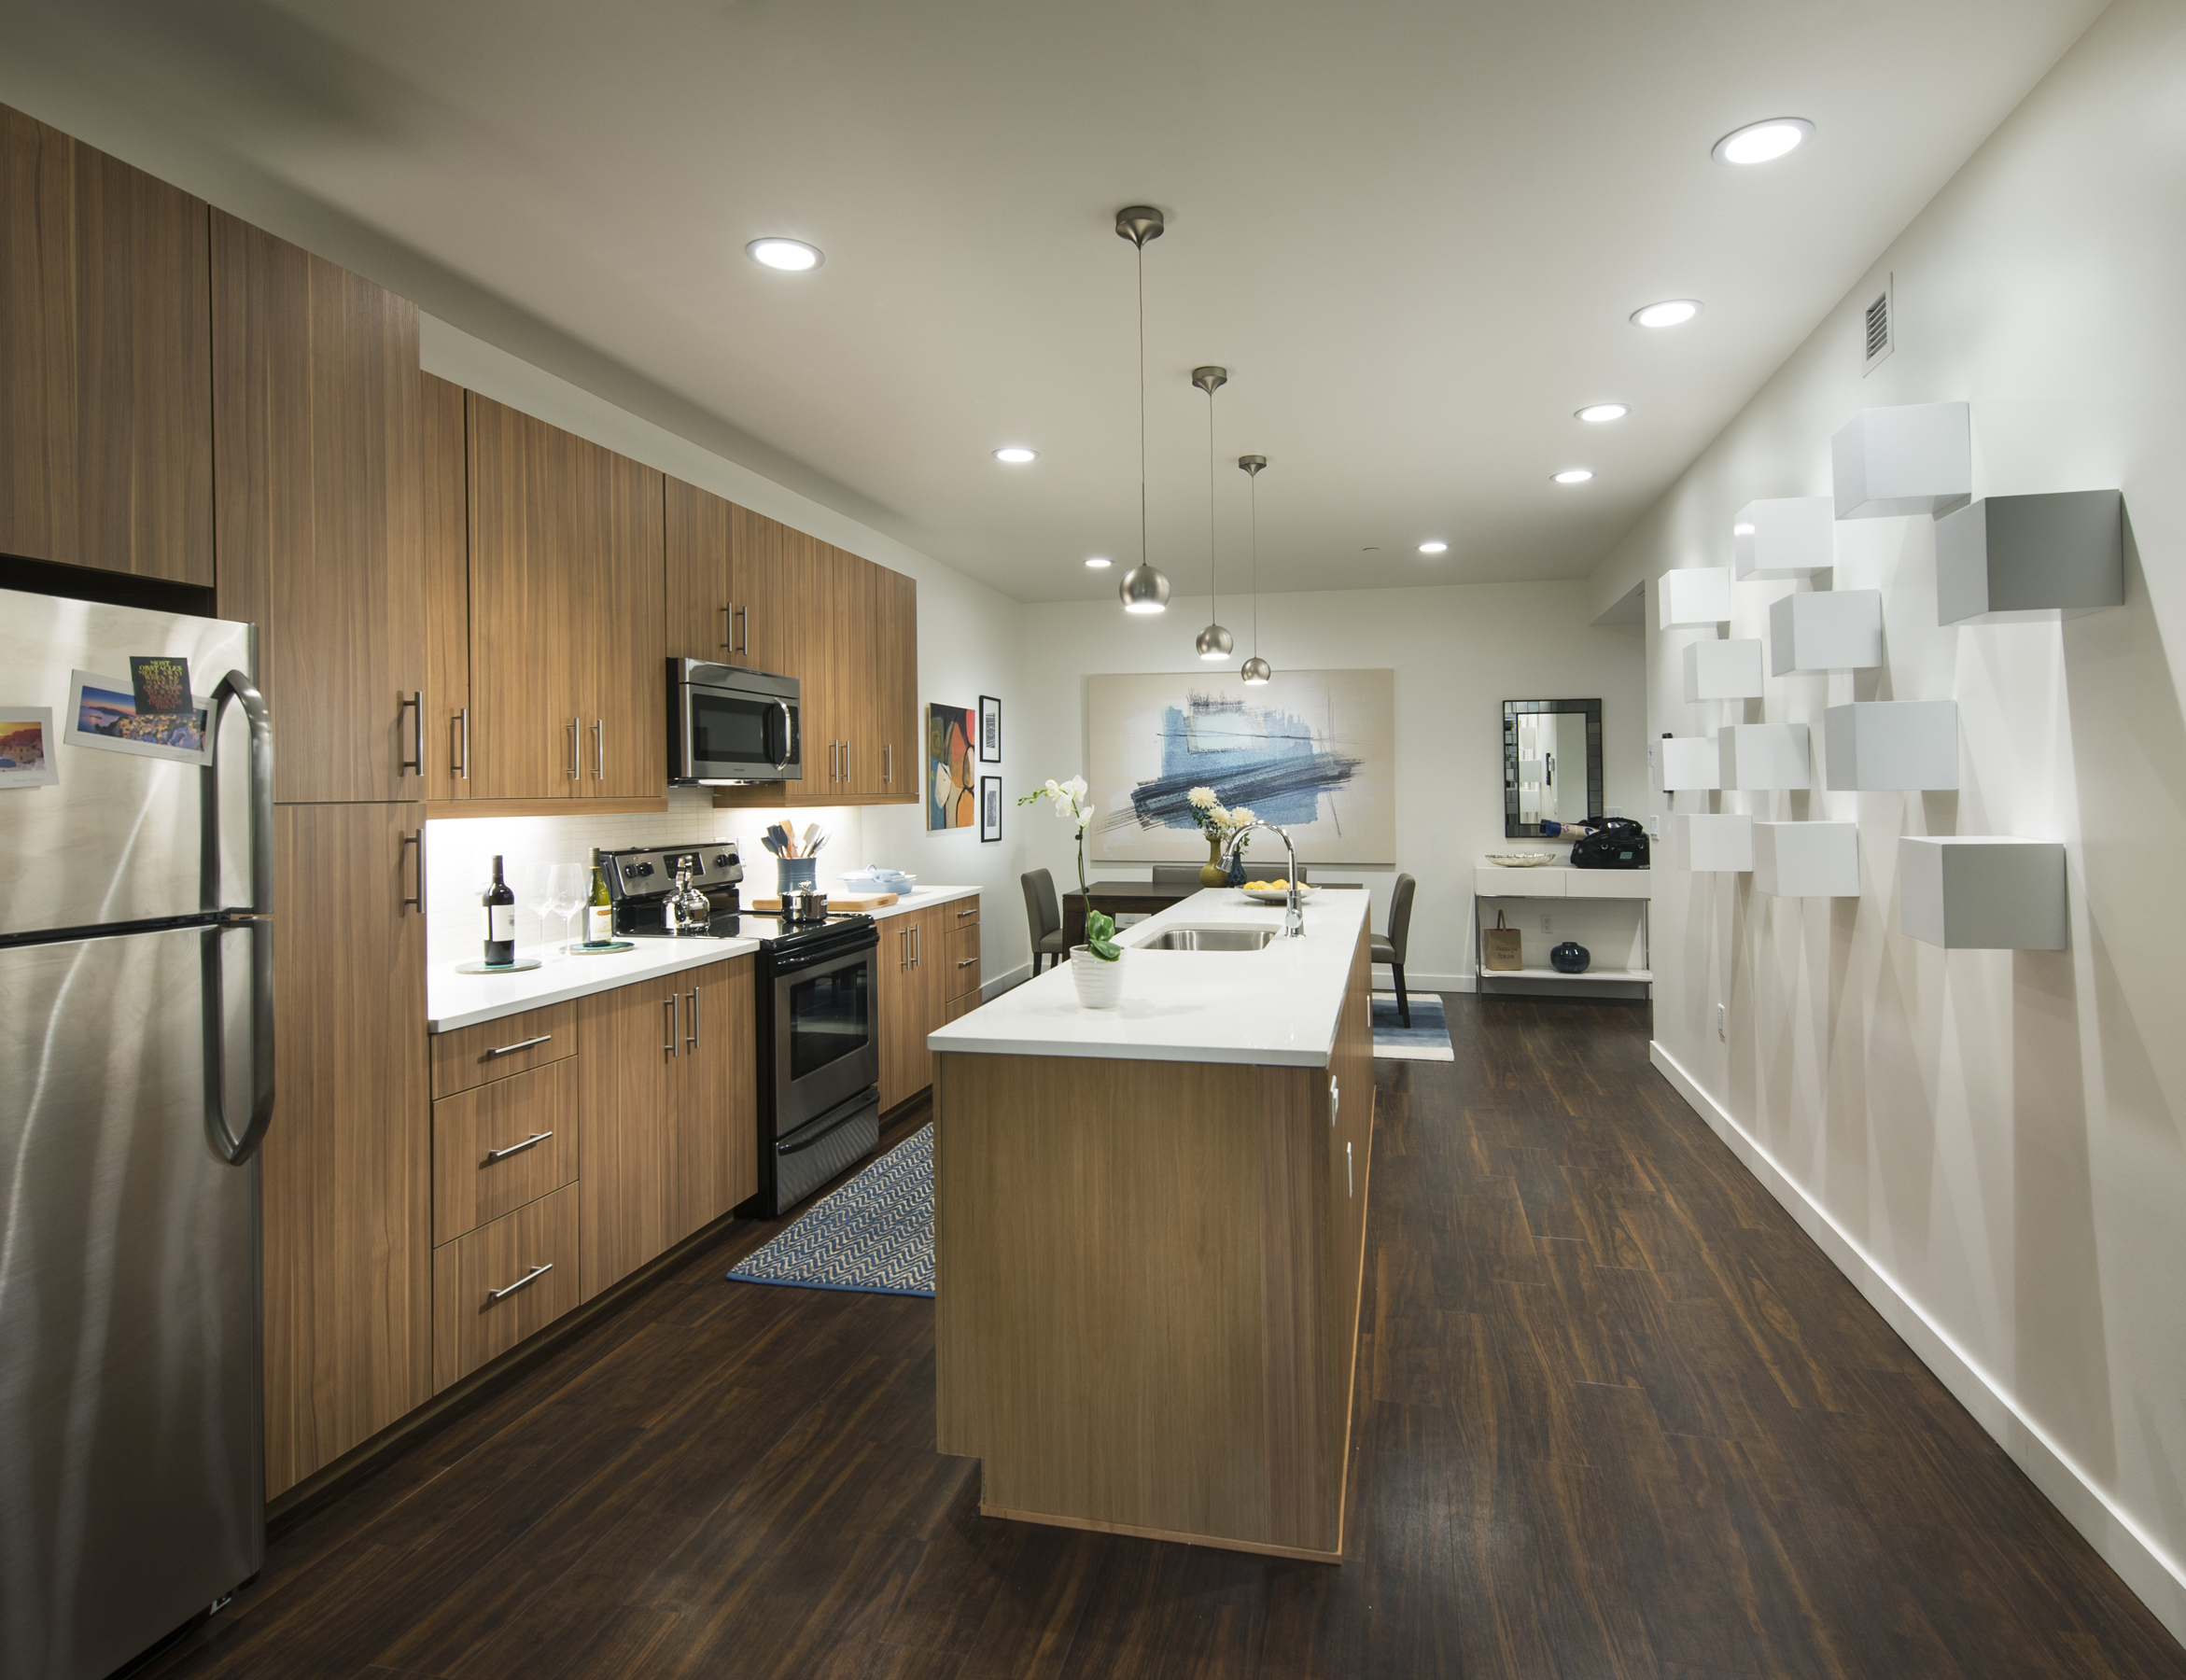 13 Residences at Fillmore Plaza Cherry Creek open studio architecture OSA - interior one bedroom